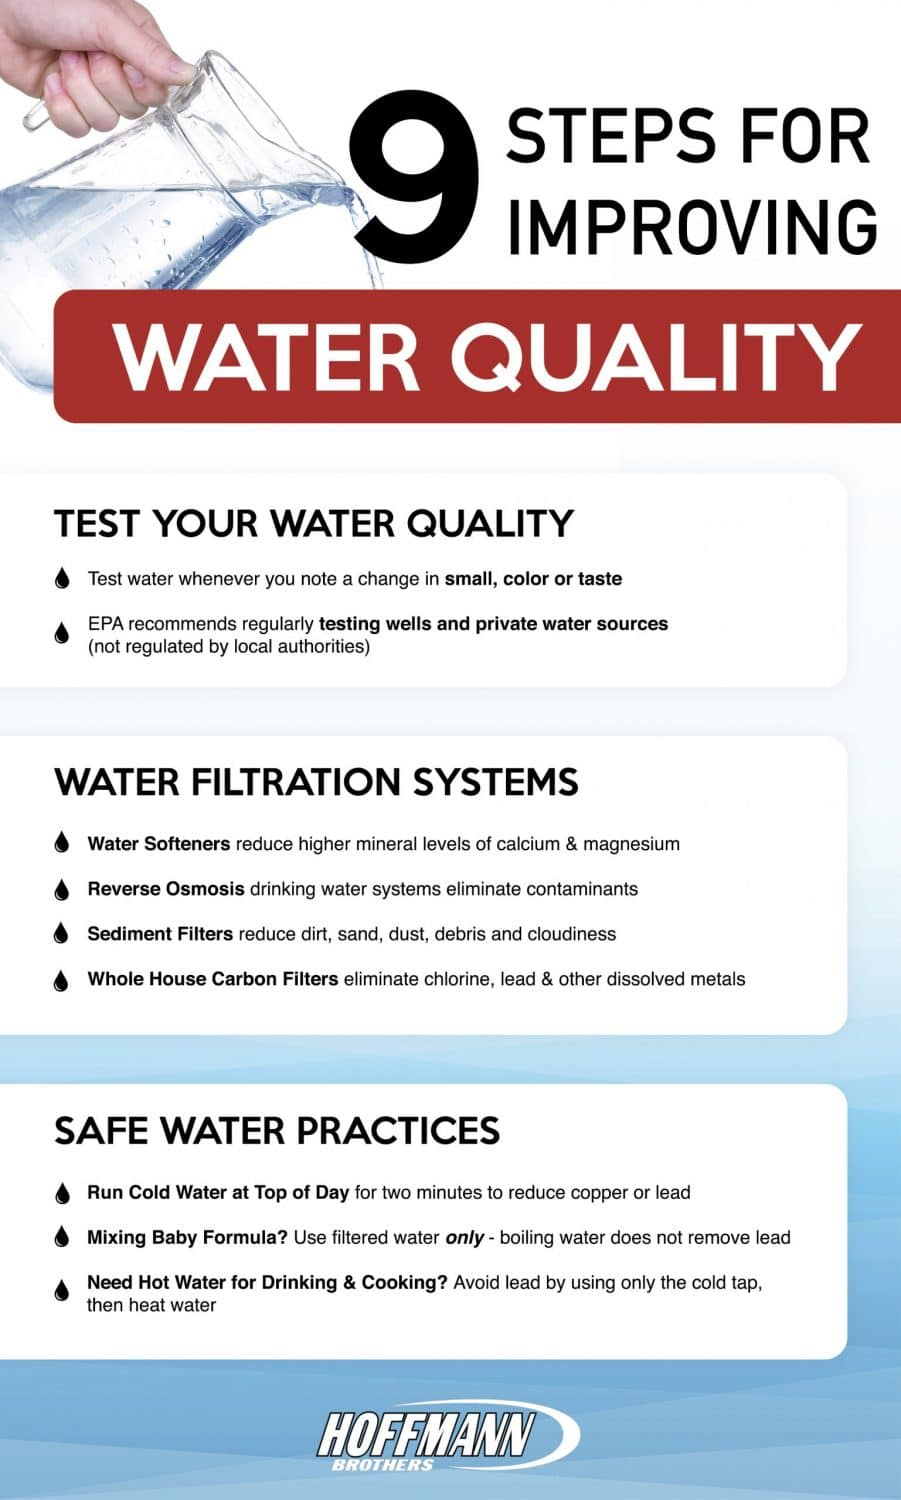 How to Improve Water Quality - Hoffmann Brothers